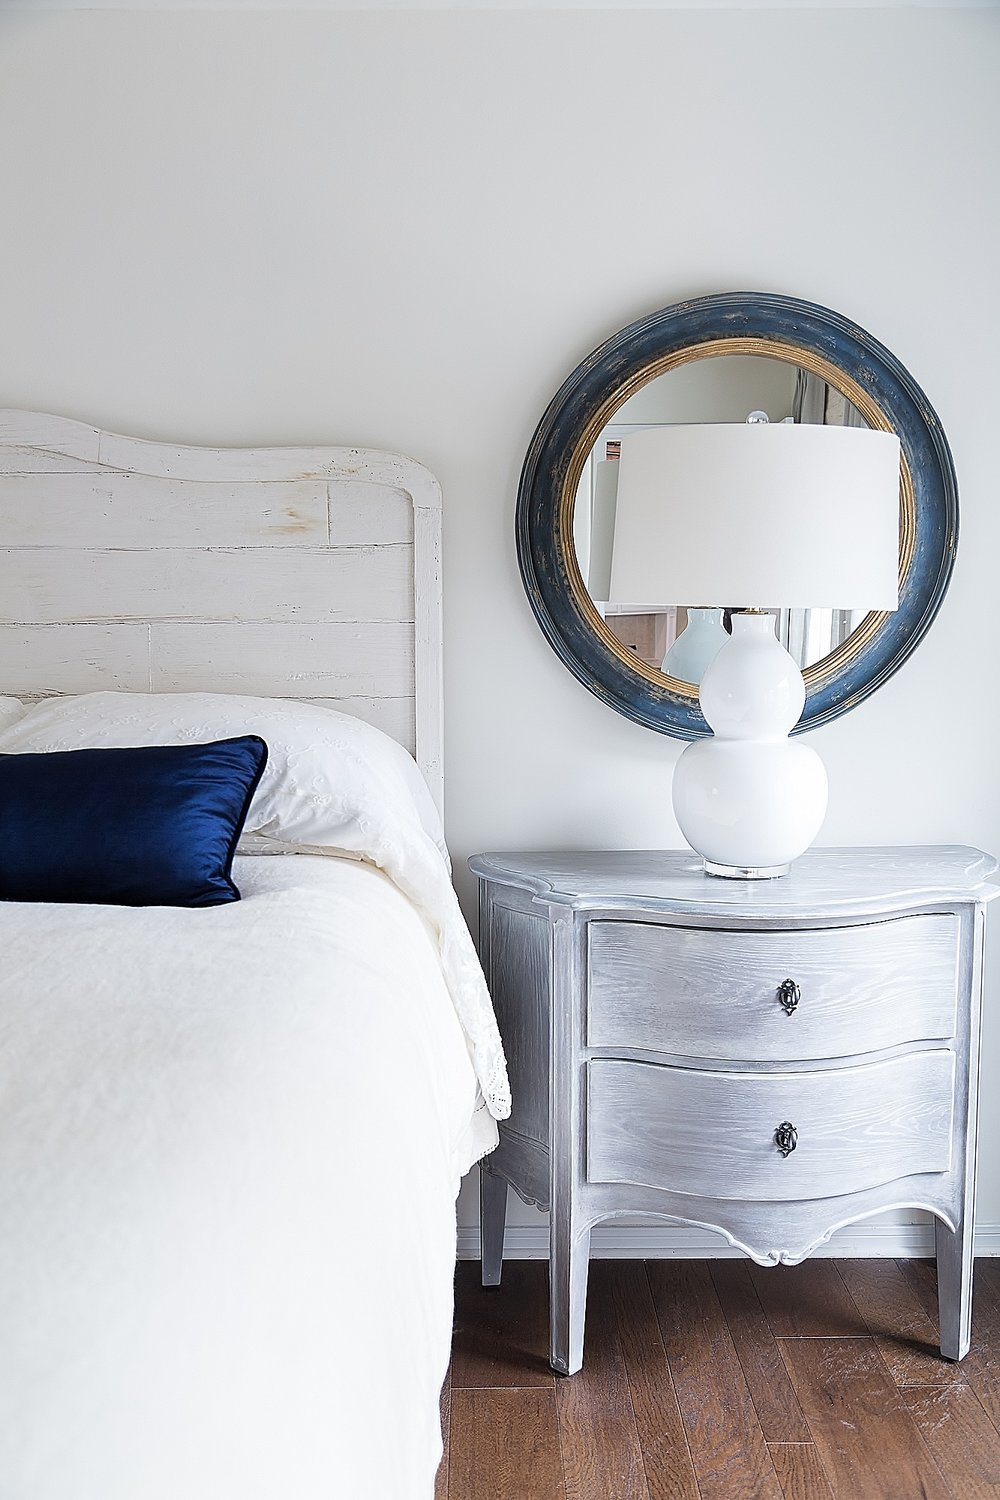 Nightstand, mirror, lamp detail in bedroom